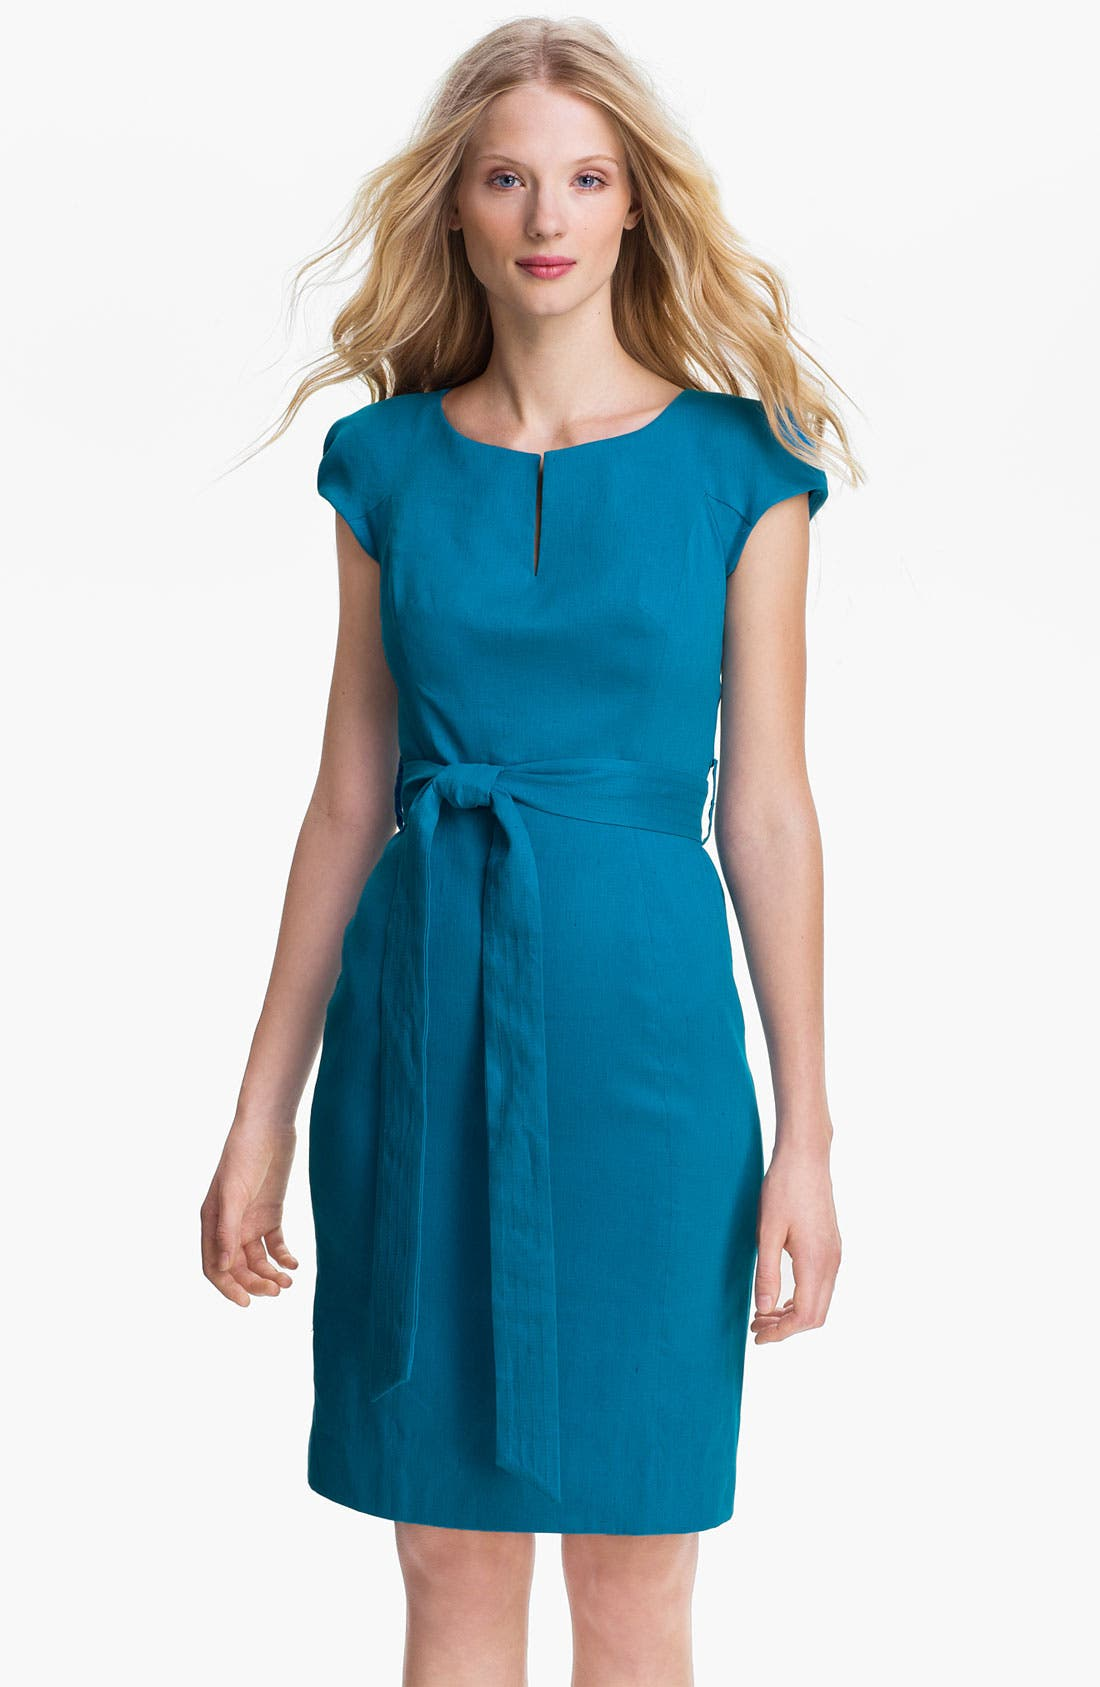 Main Image - Milly 'Slim Haley' Linen Blend Sheath Dress